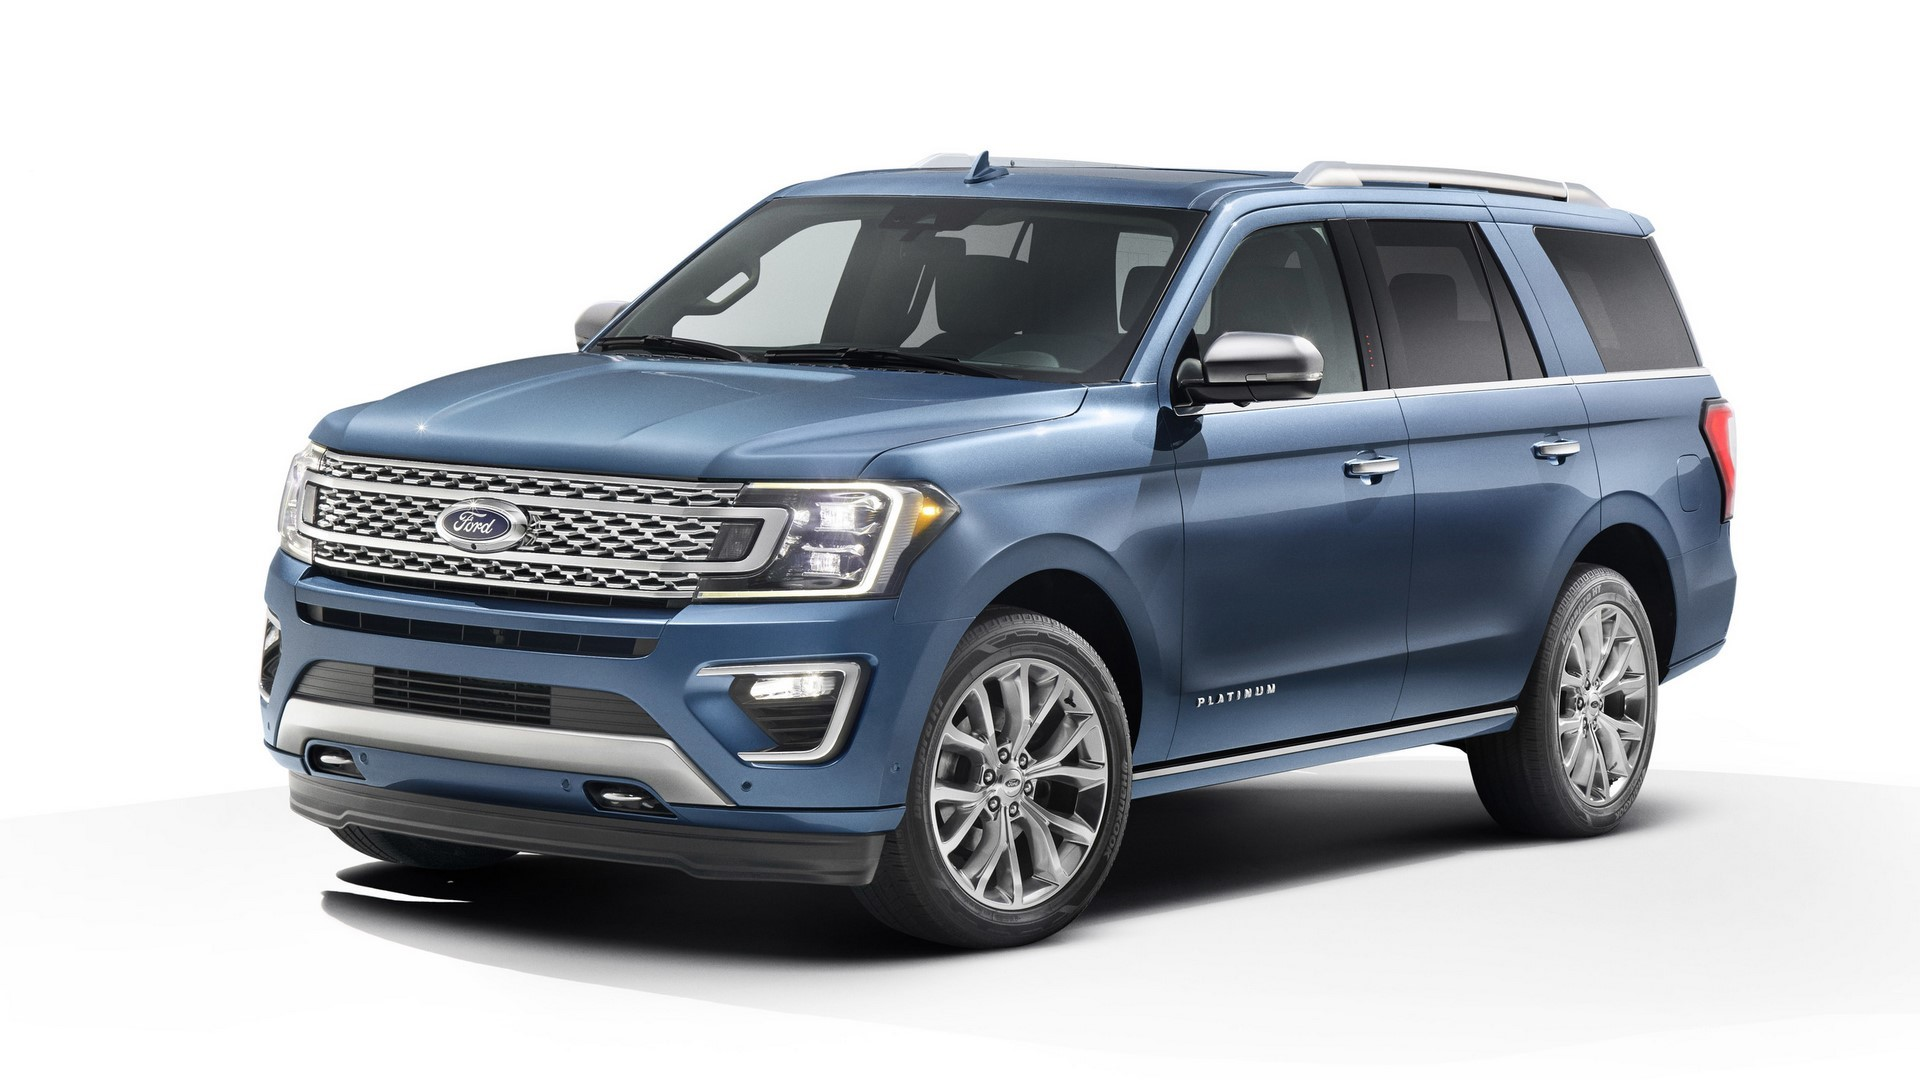 2018-ford-expedition-5-1